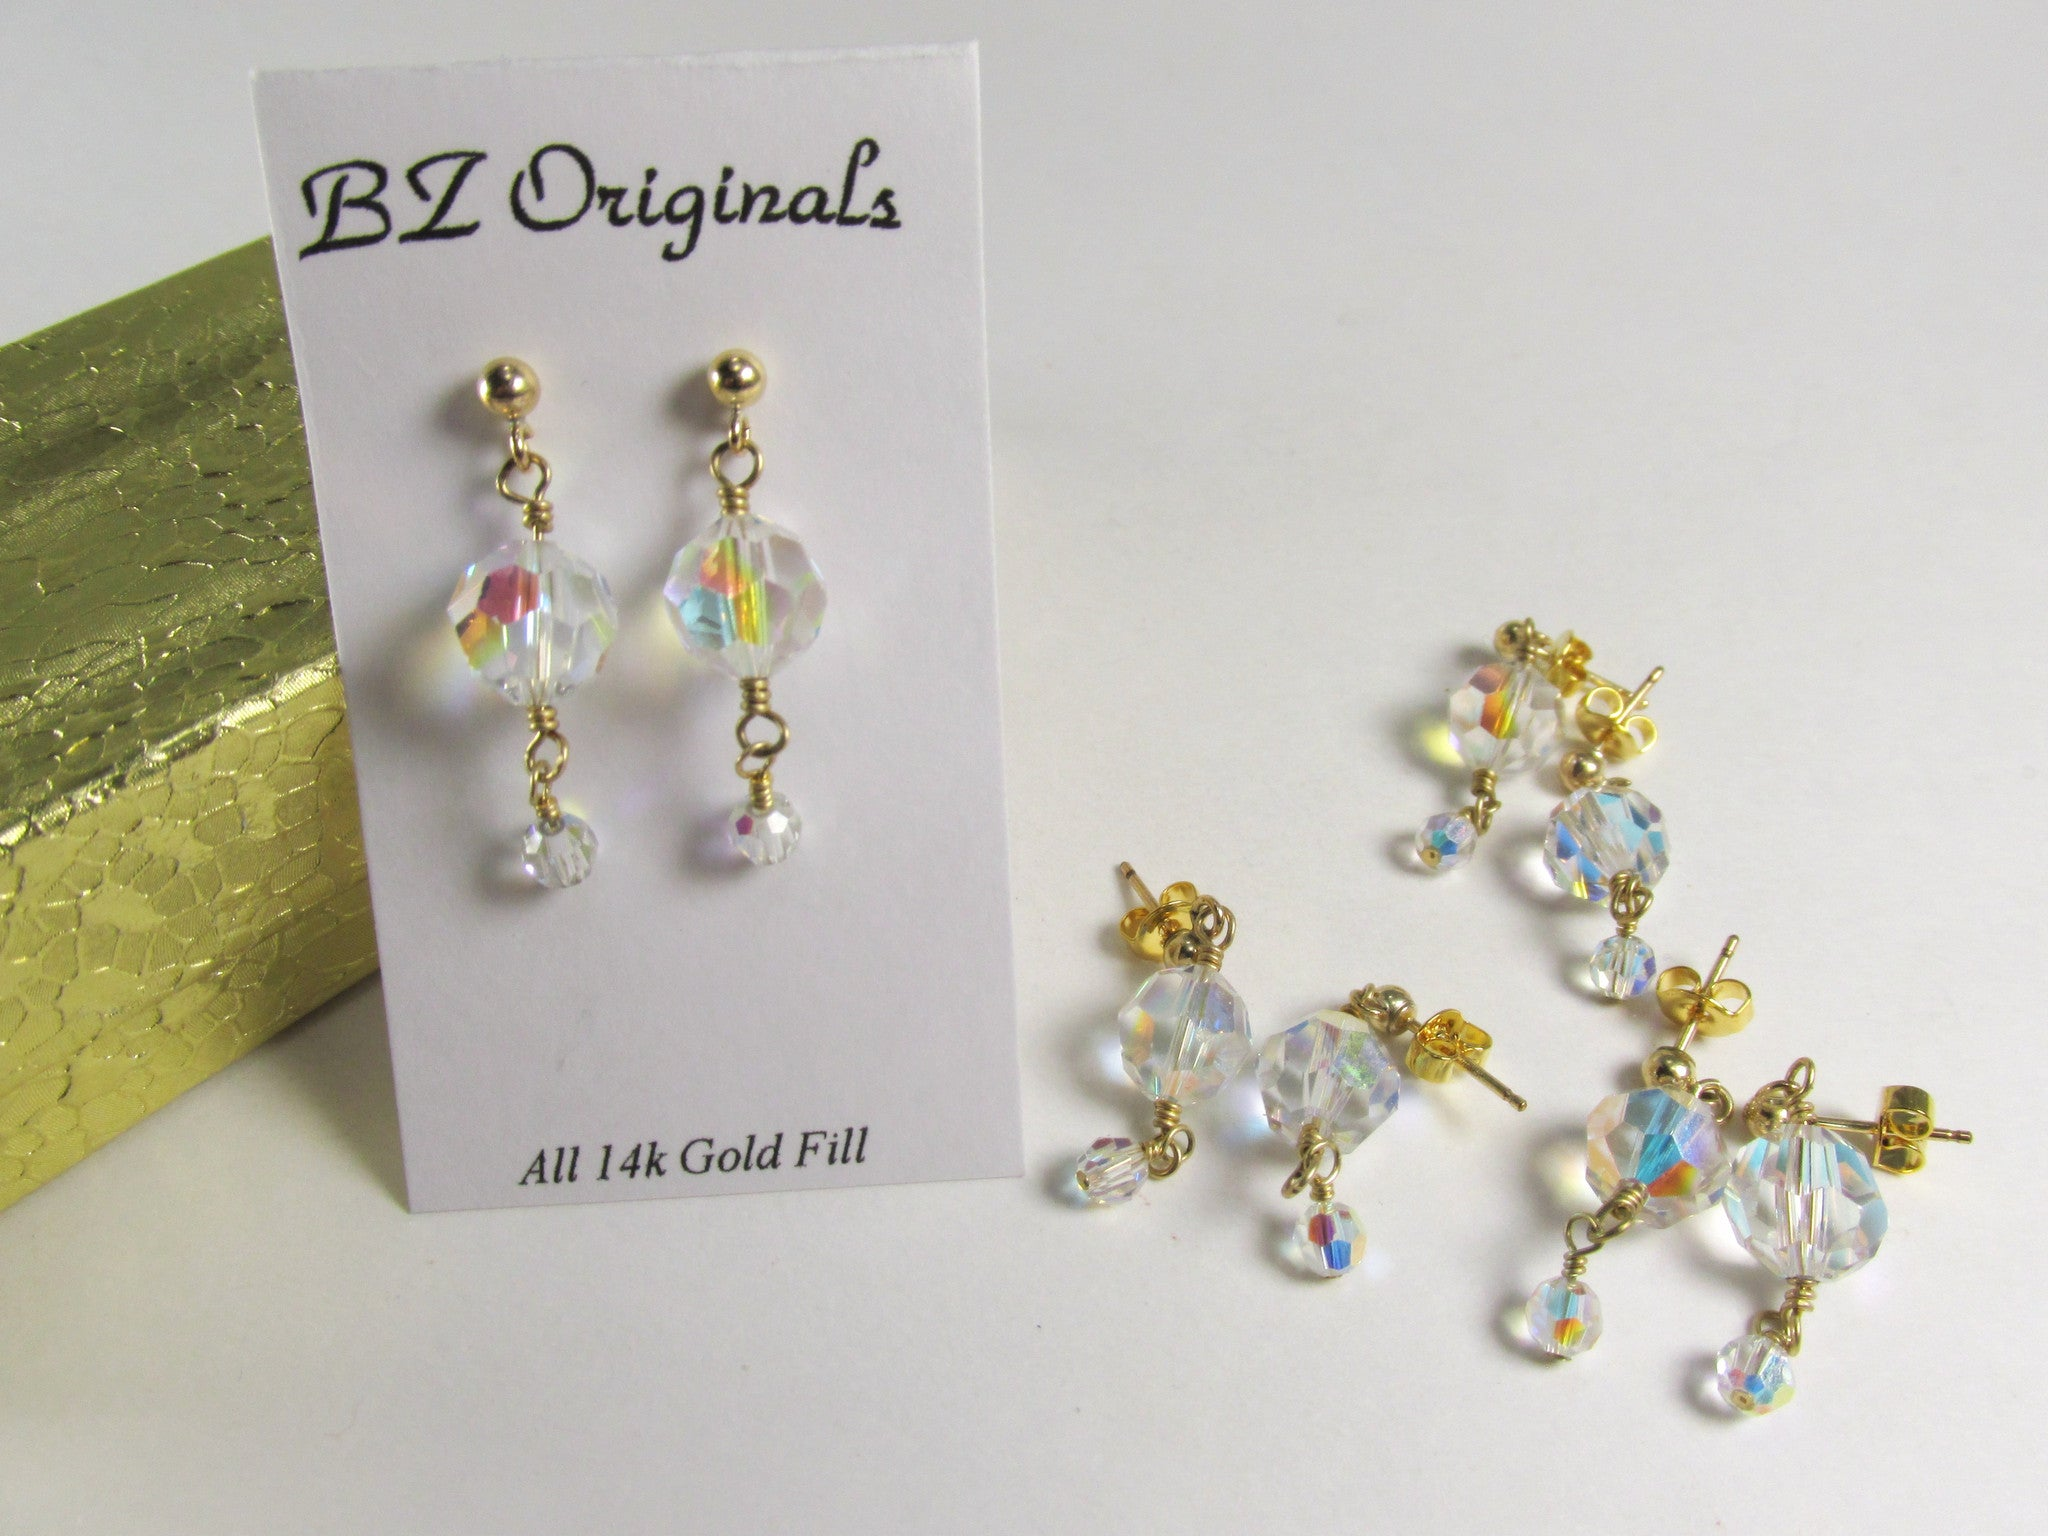 Crystal AB Swarovski 20mm Dangle Drop Bridesmaid Earrings on 14k Gold Fill - Odyssey Creations